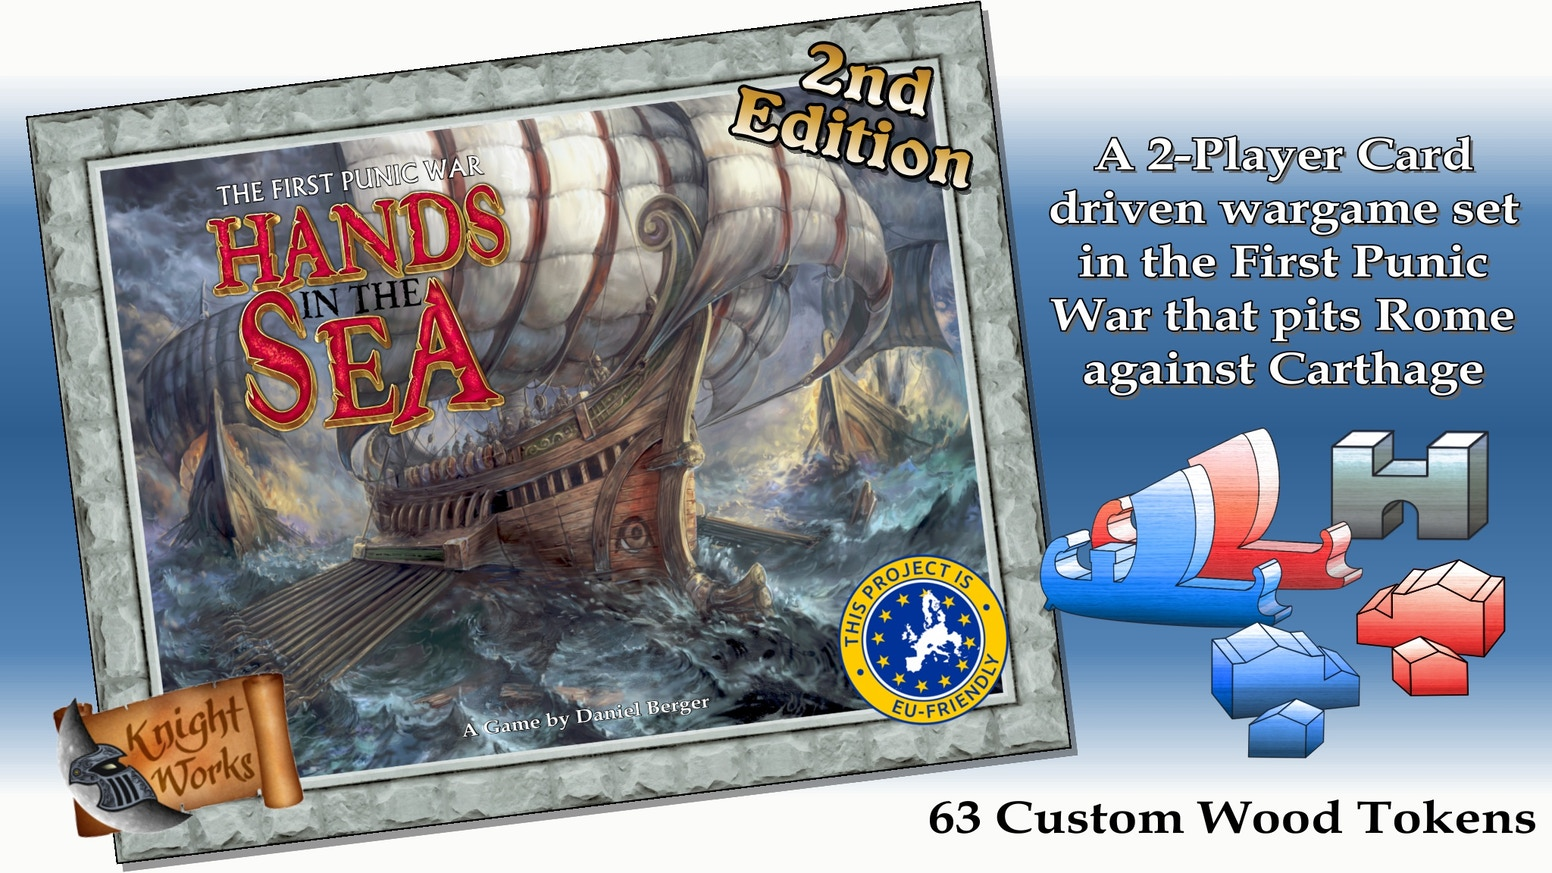 Hands In The Sea 2nd Edition By Knight Works Kickstarter Circuitboardpictureframe4x6customjpg Did You Miss Kickstarterno Worries For A Limited Time Can